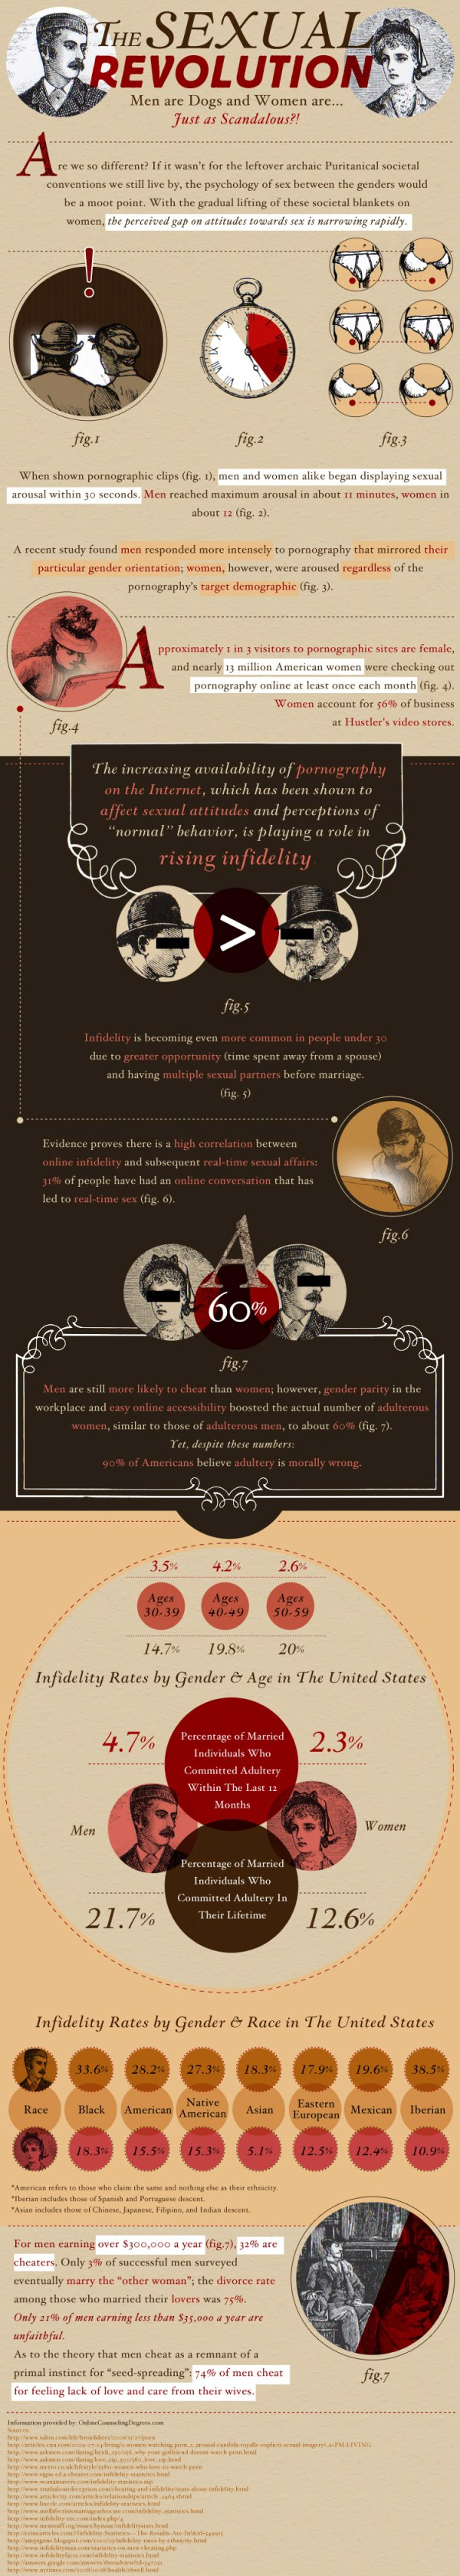 Infographic about the sexual revolution